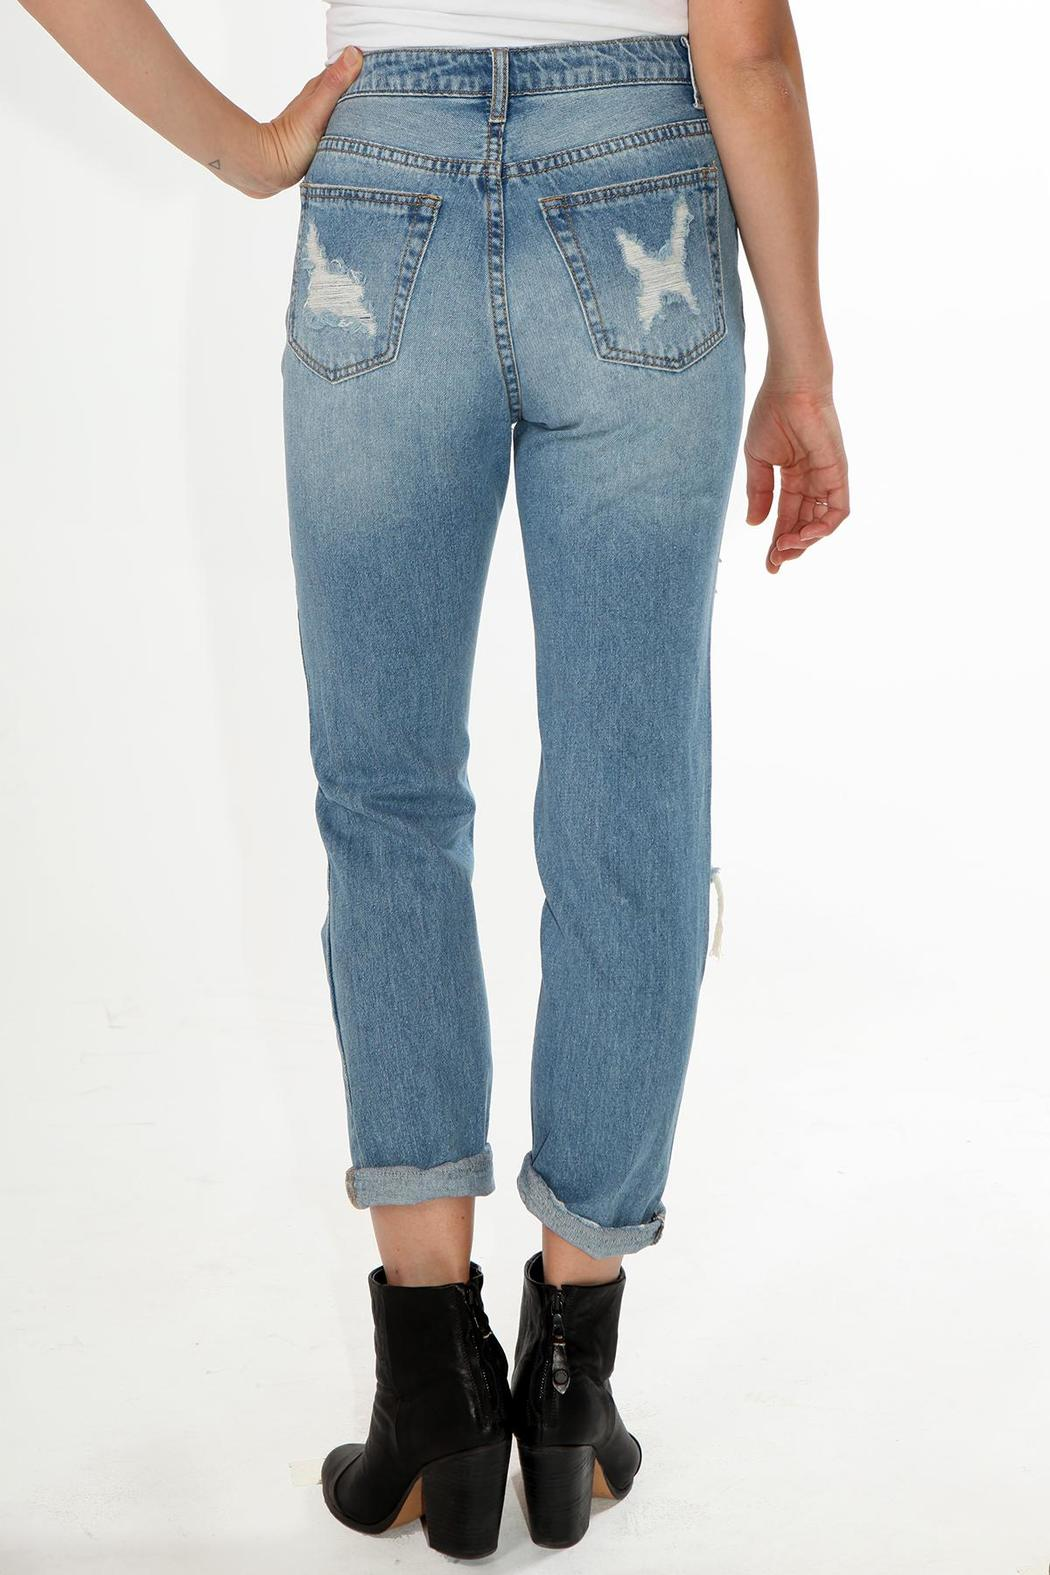 SIGNATURE8 Vintage Destroyed Jeans from Los Angeles by Goldie's ...